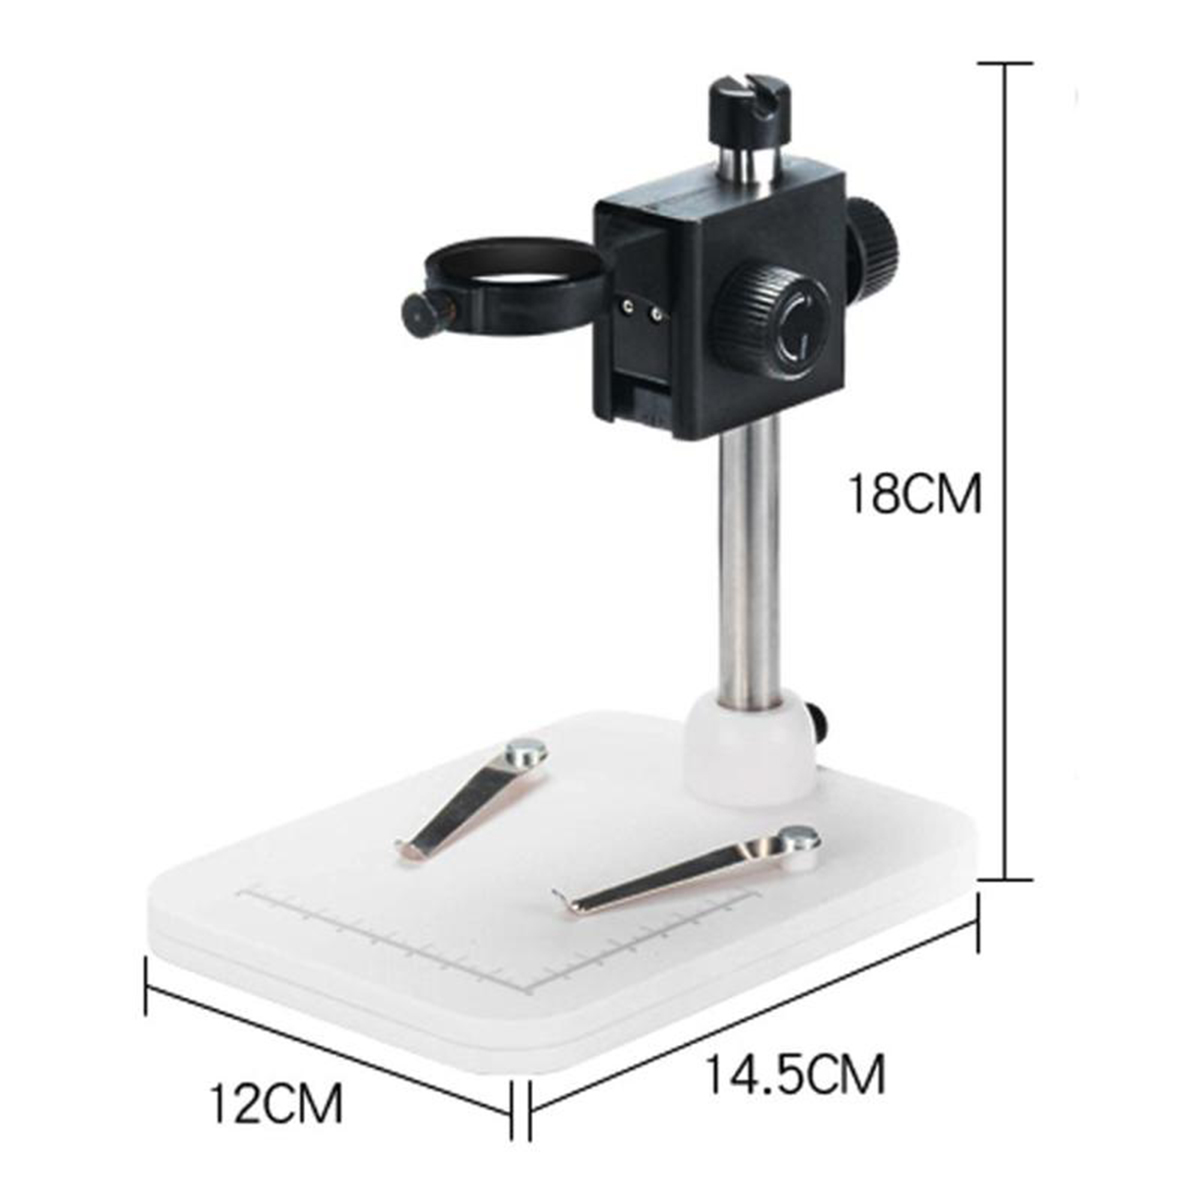 1000x Mega Pixels Digital Microscope with LCD Display and 8 LEDs Stand for Motherboard Repair 2